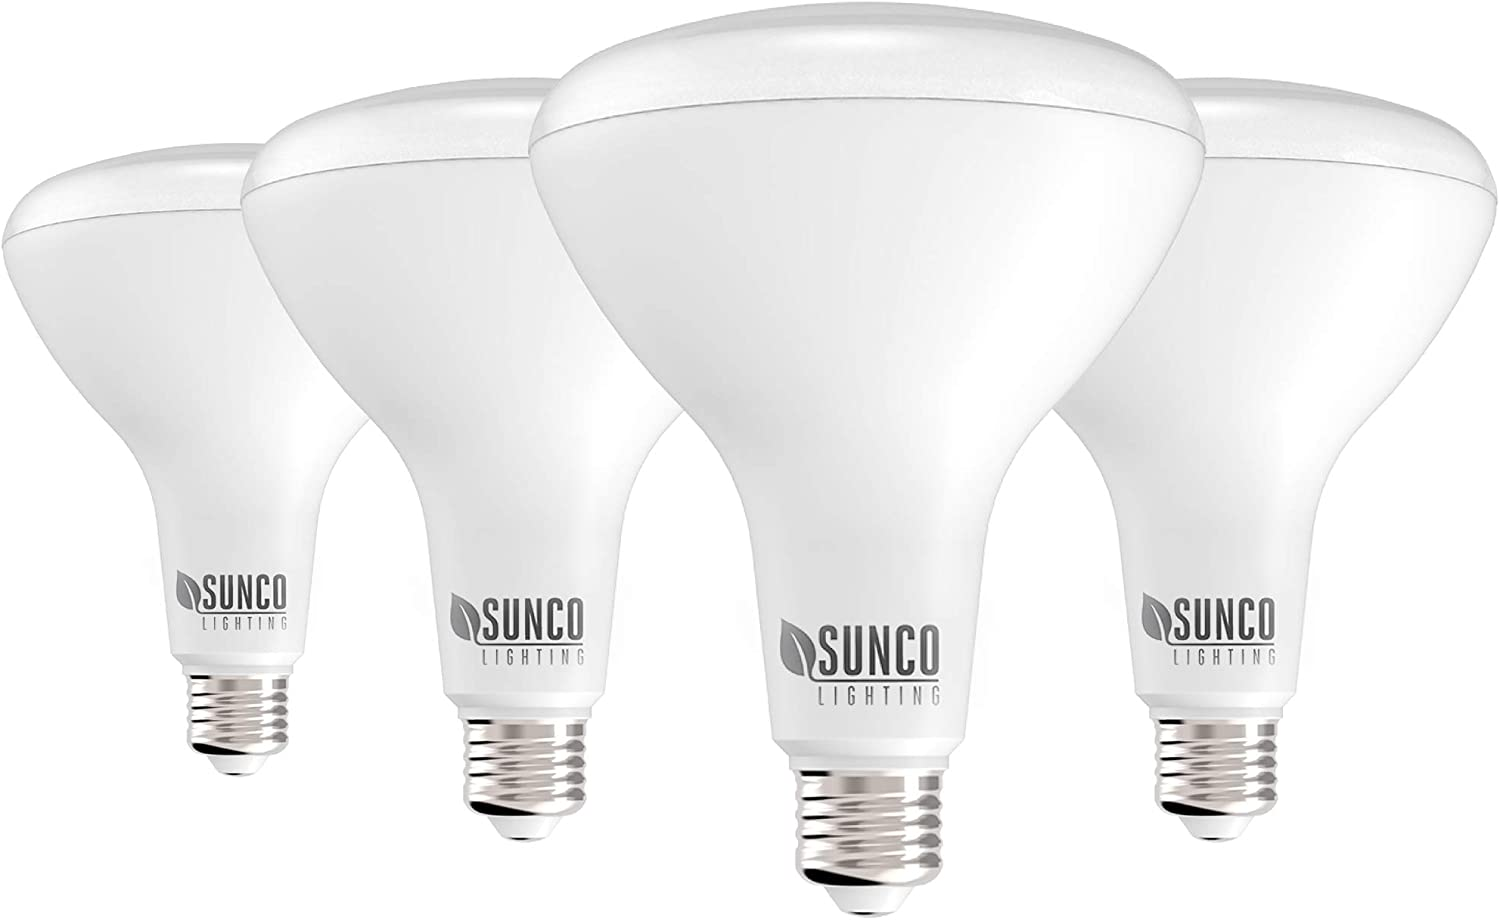 Sunco Limited time cheap sale Lighting 4 Pack Japan Maker New BR40 LED W Bulb 17W=100W 3000K Dimmable